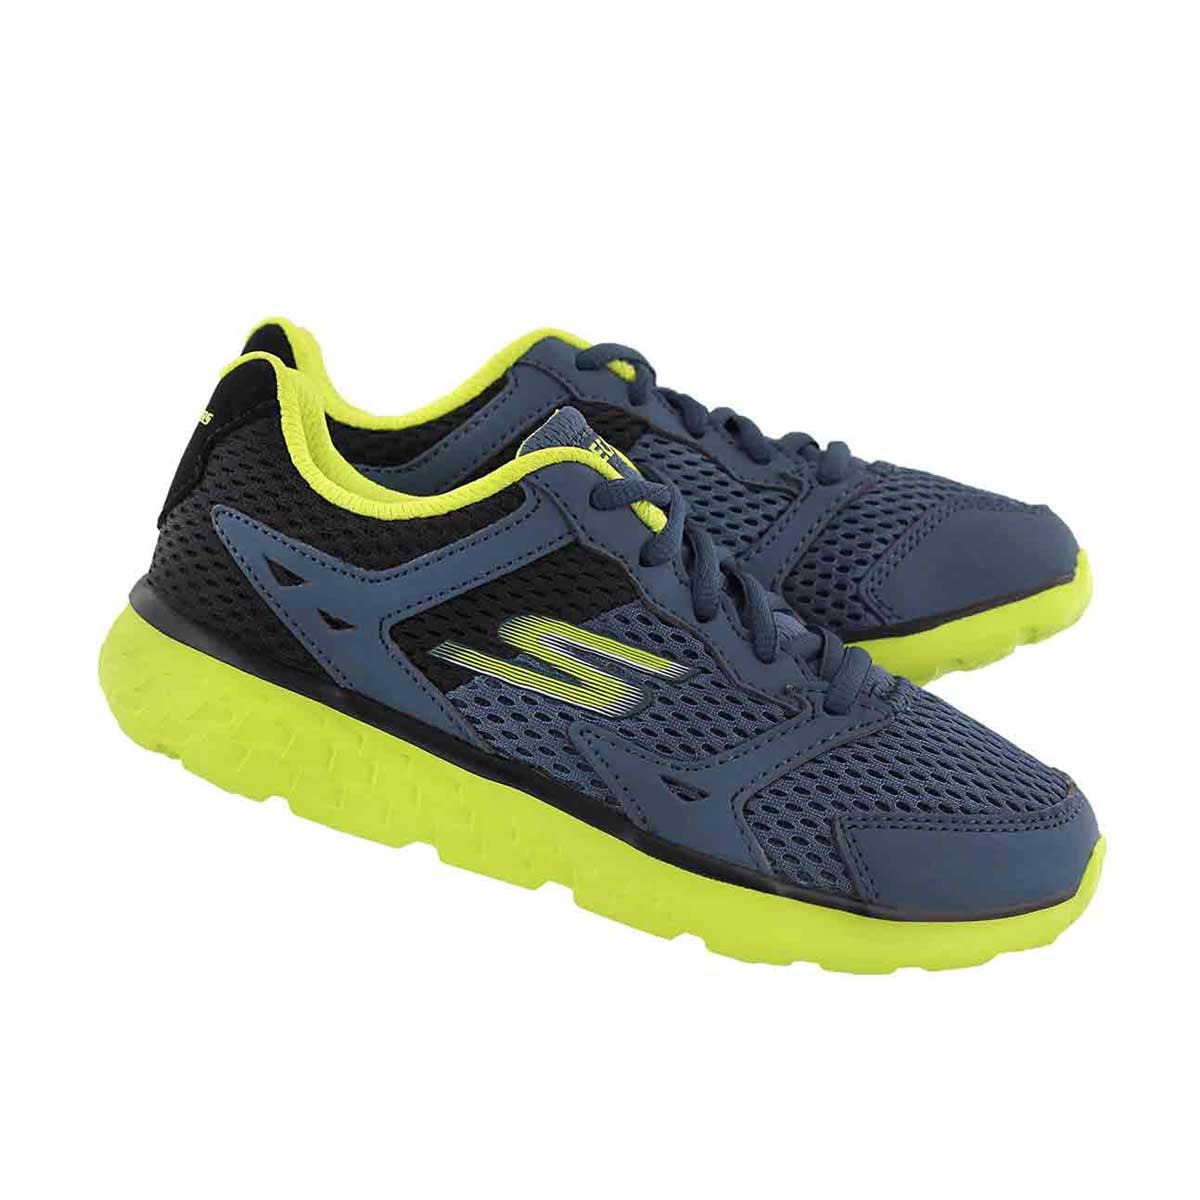 Bys GOrun 400 blue/lime lace up sneaker